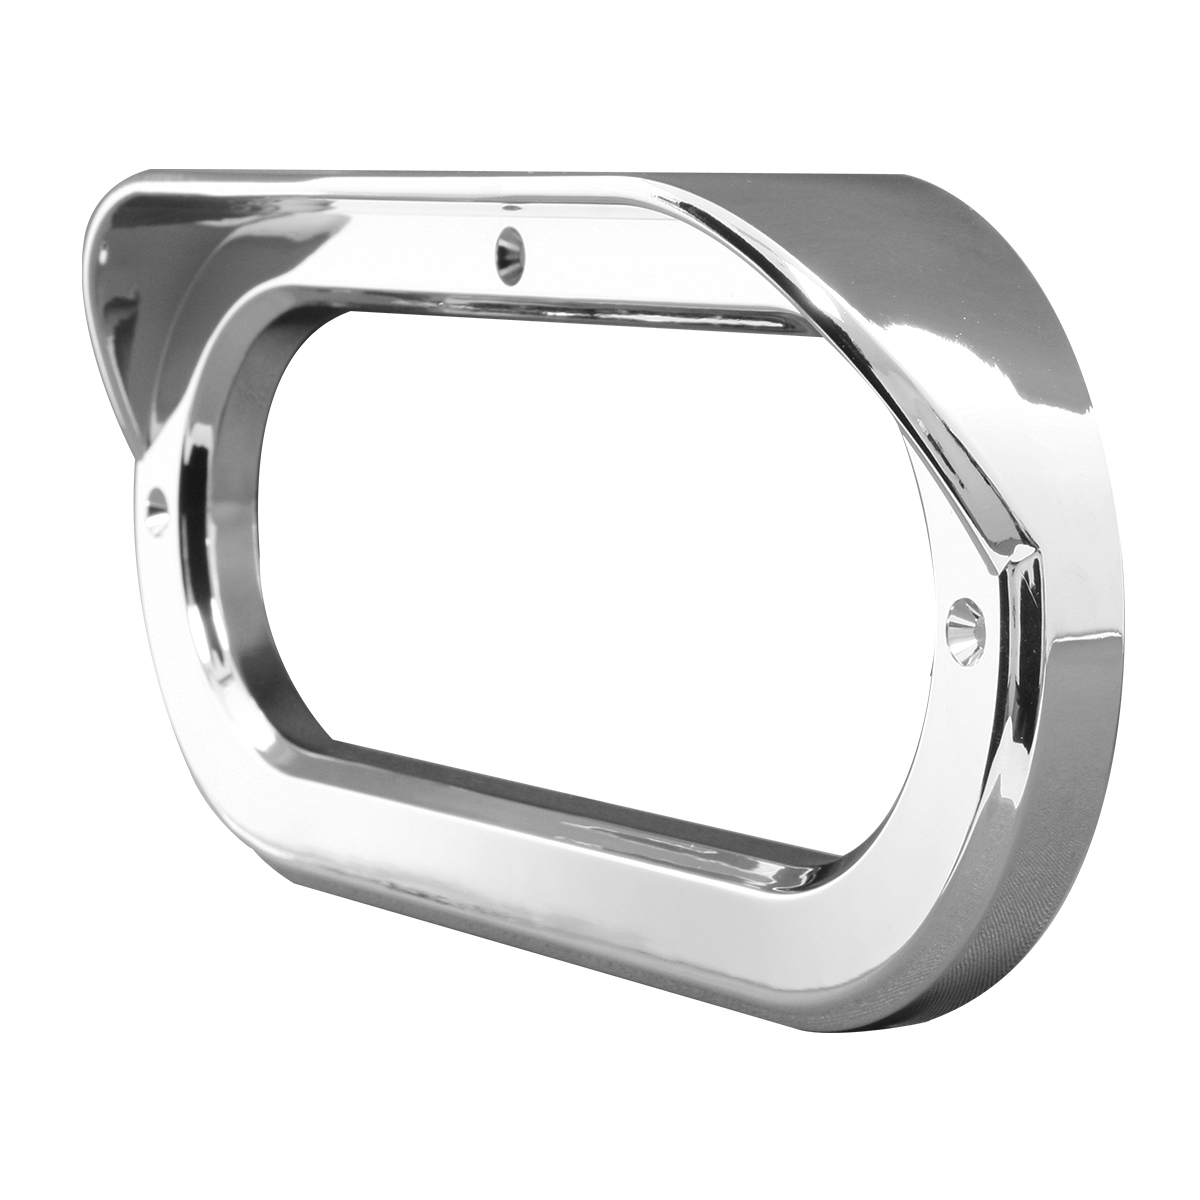 "80807 Chrome Plastic Grommet Cover w/ Visor in Horizontal Style for 6.5"" Large Oval Light"